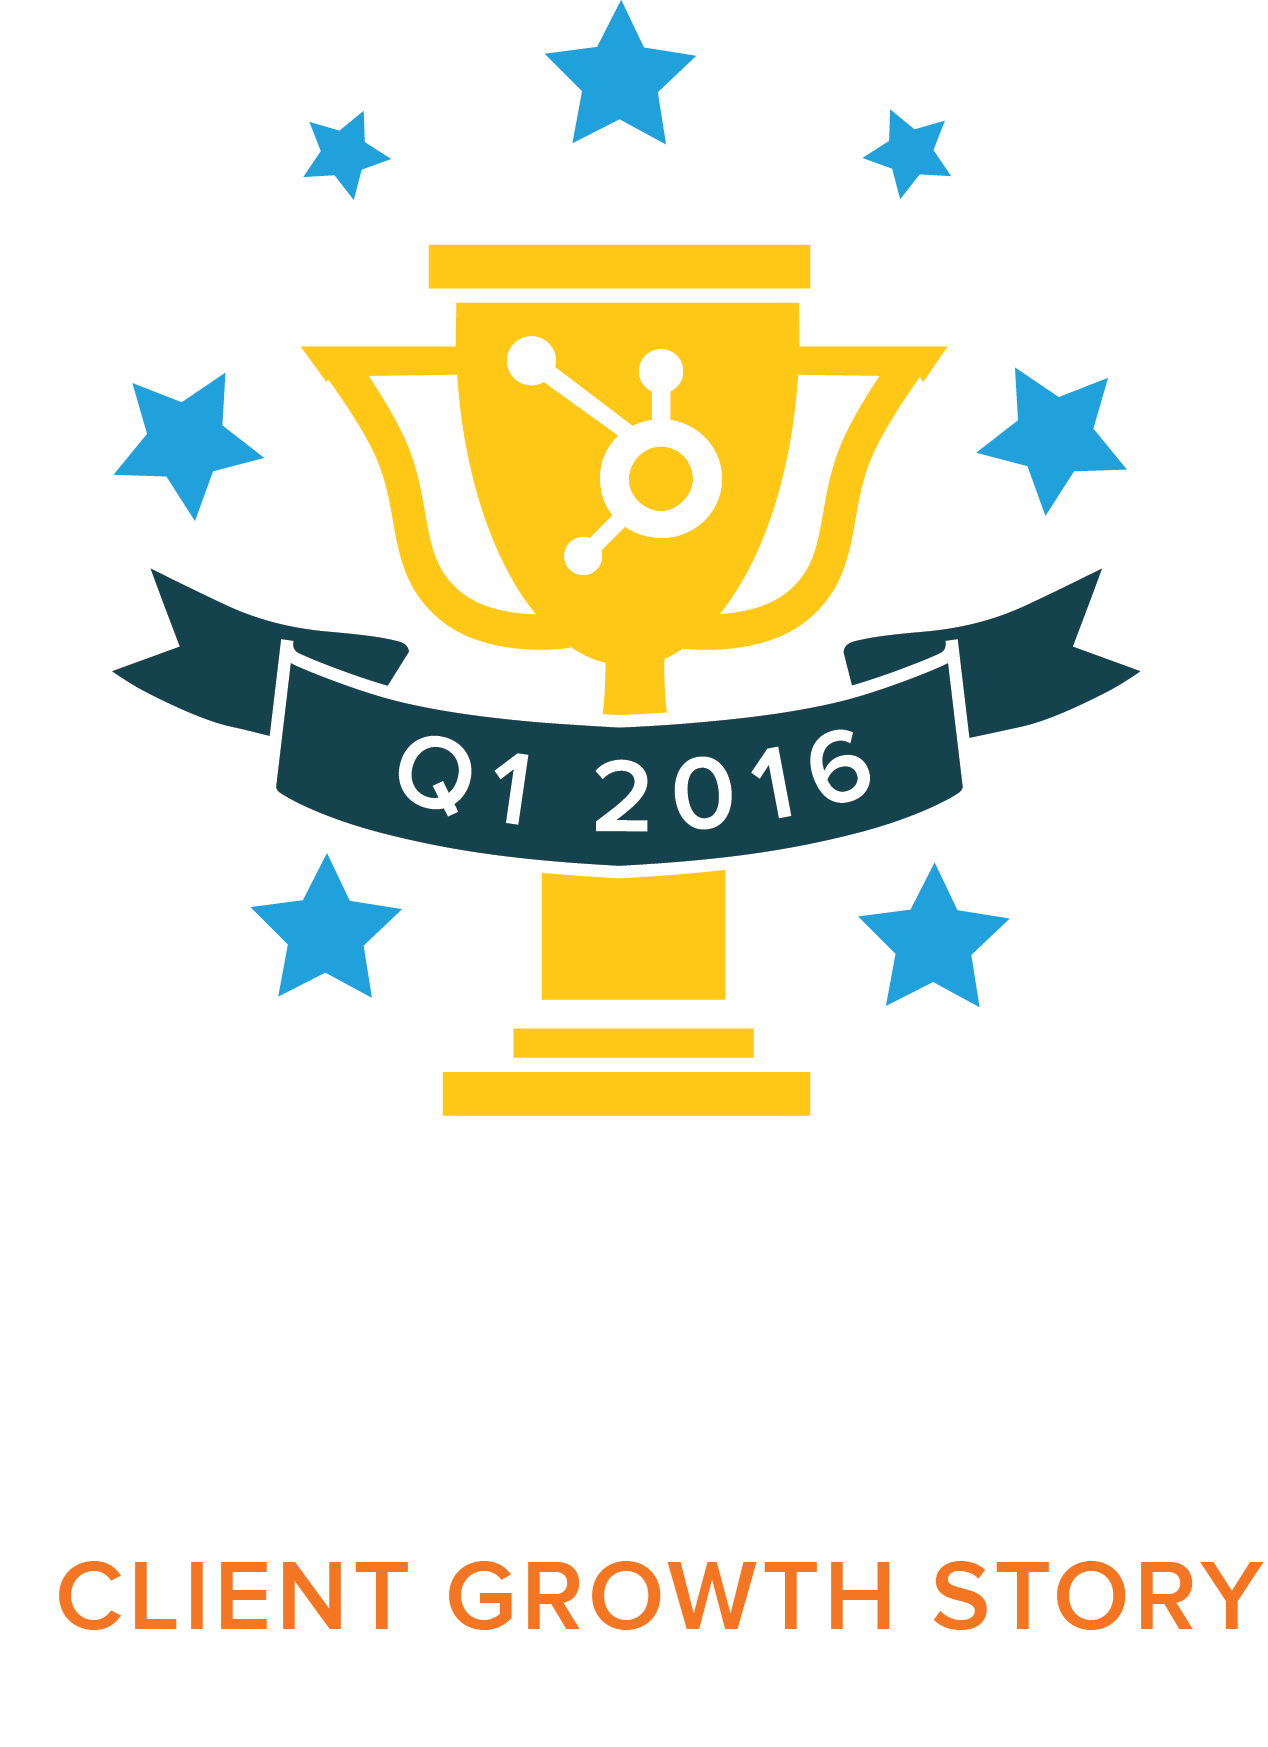 HubSpot-Impact-Award-Client-Growth-Story.png